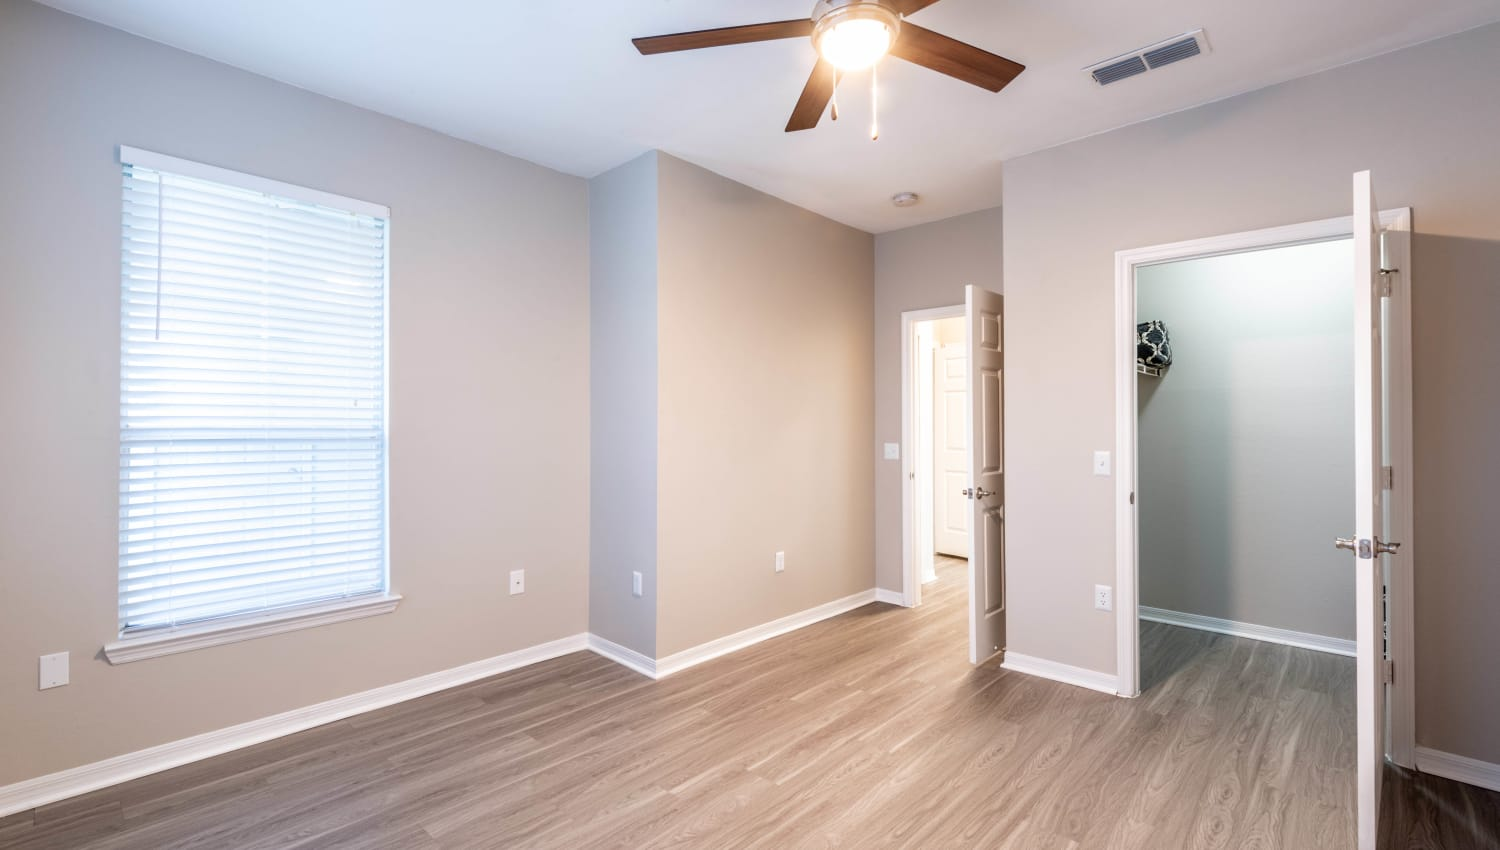 Bedroom with hardwood flooring and a ceiling fan in a model home at Cape House in Jacksonville, Florida